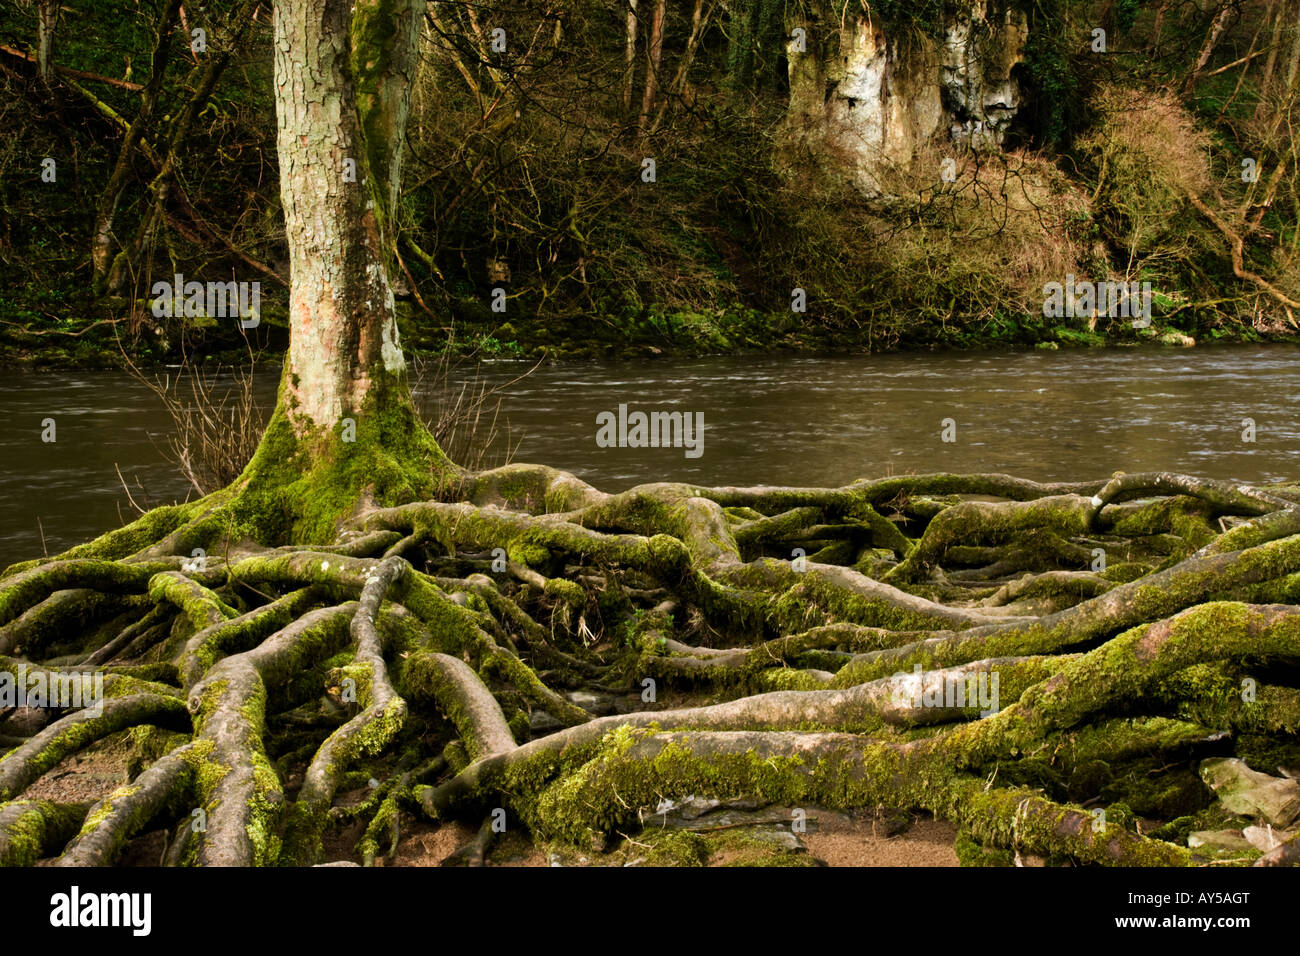 Tree roots exposed by river erosion on the banks of the River Ure at Aysgarth in Wensleydale, North Yorkshire. - Stock Image